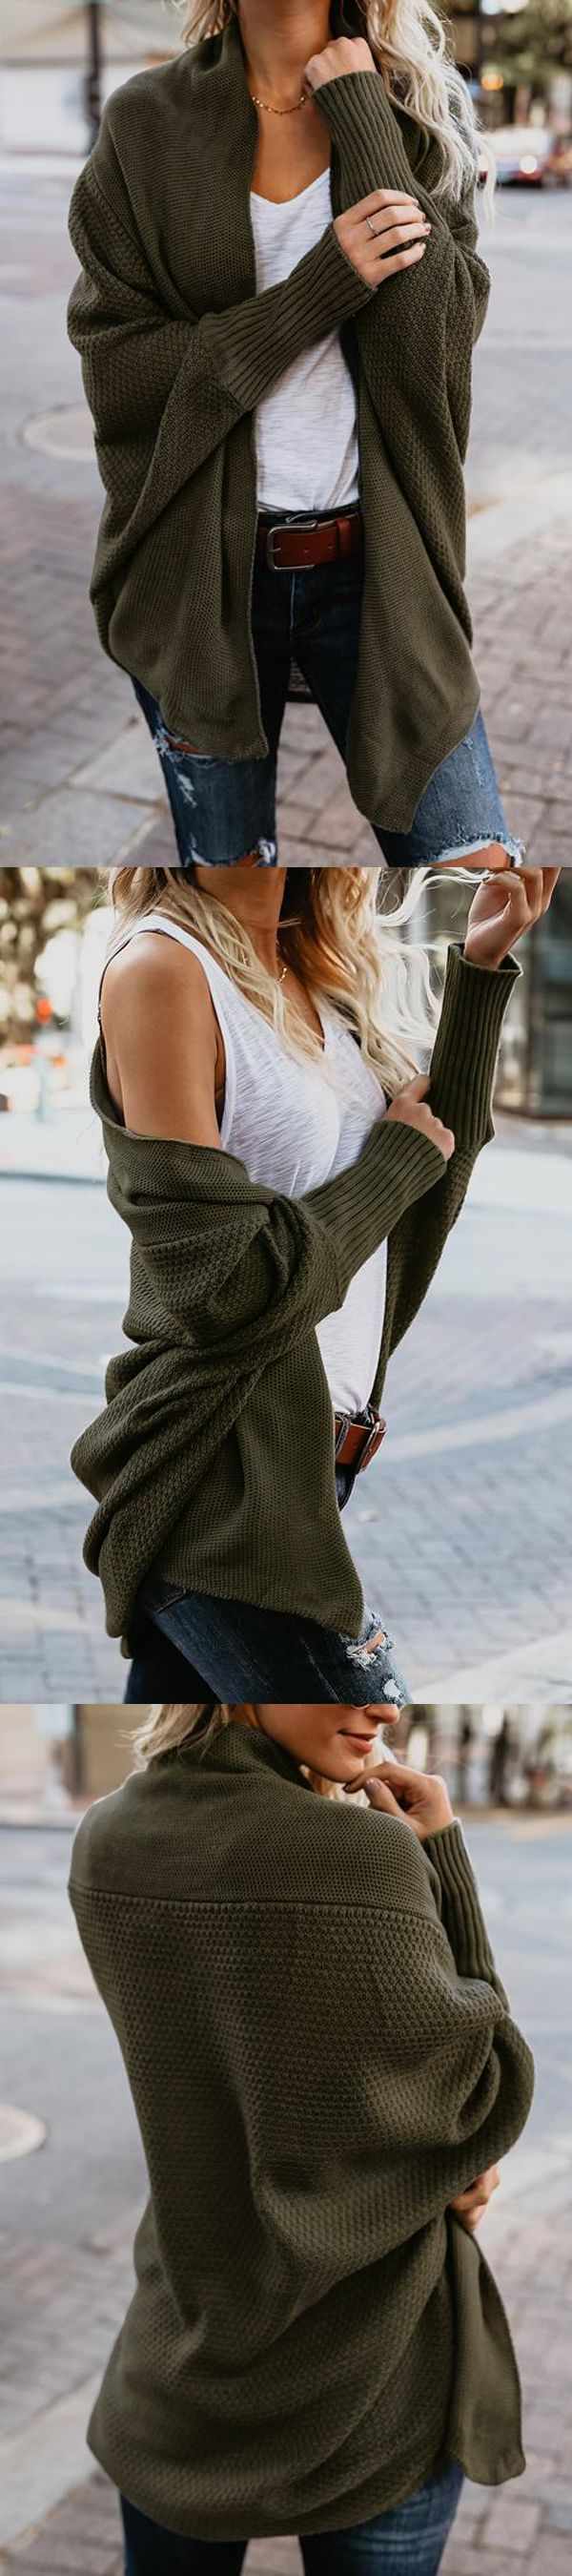 I like the oversized sweater look